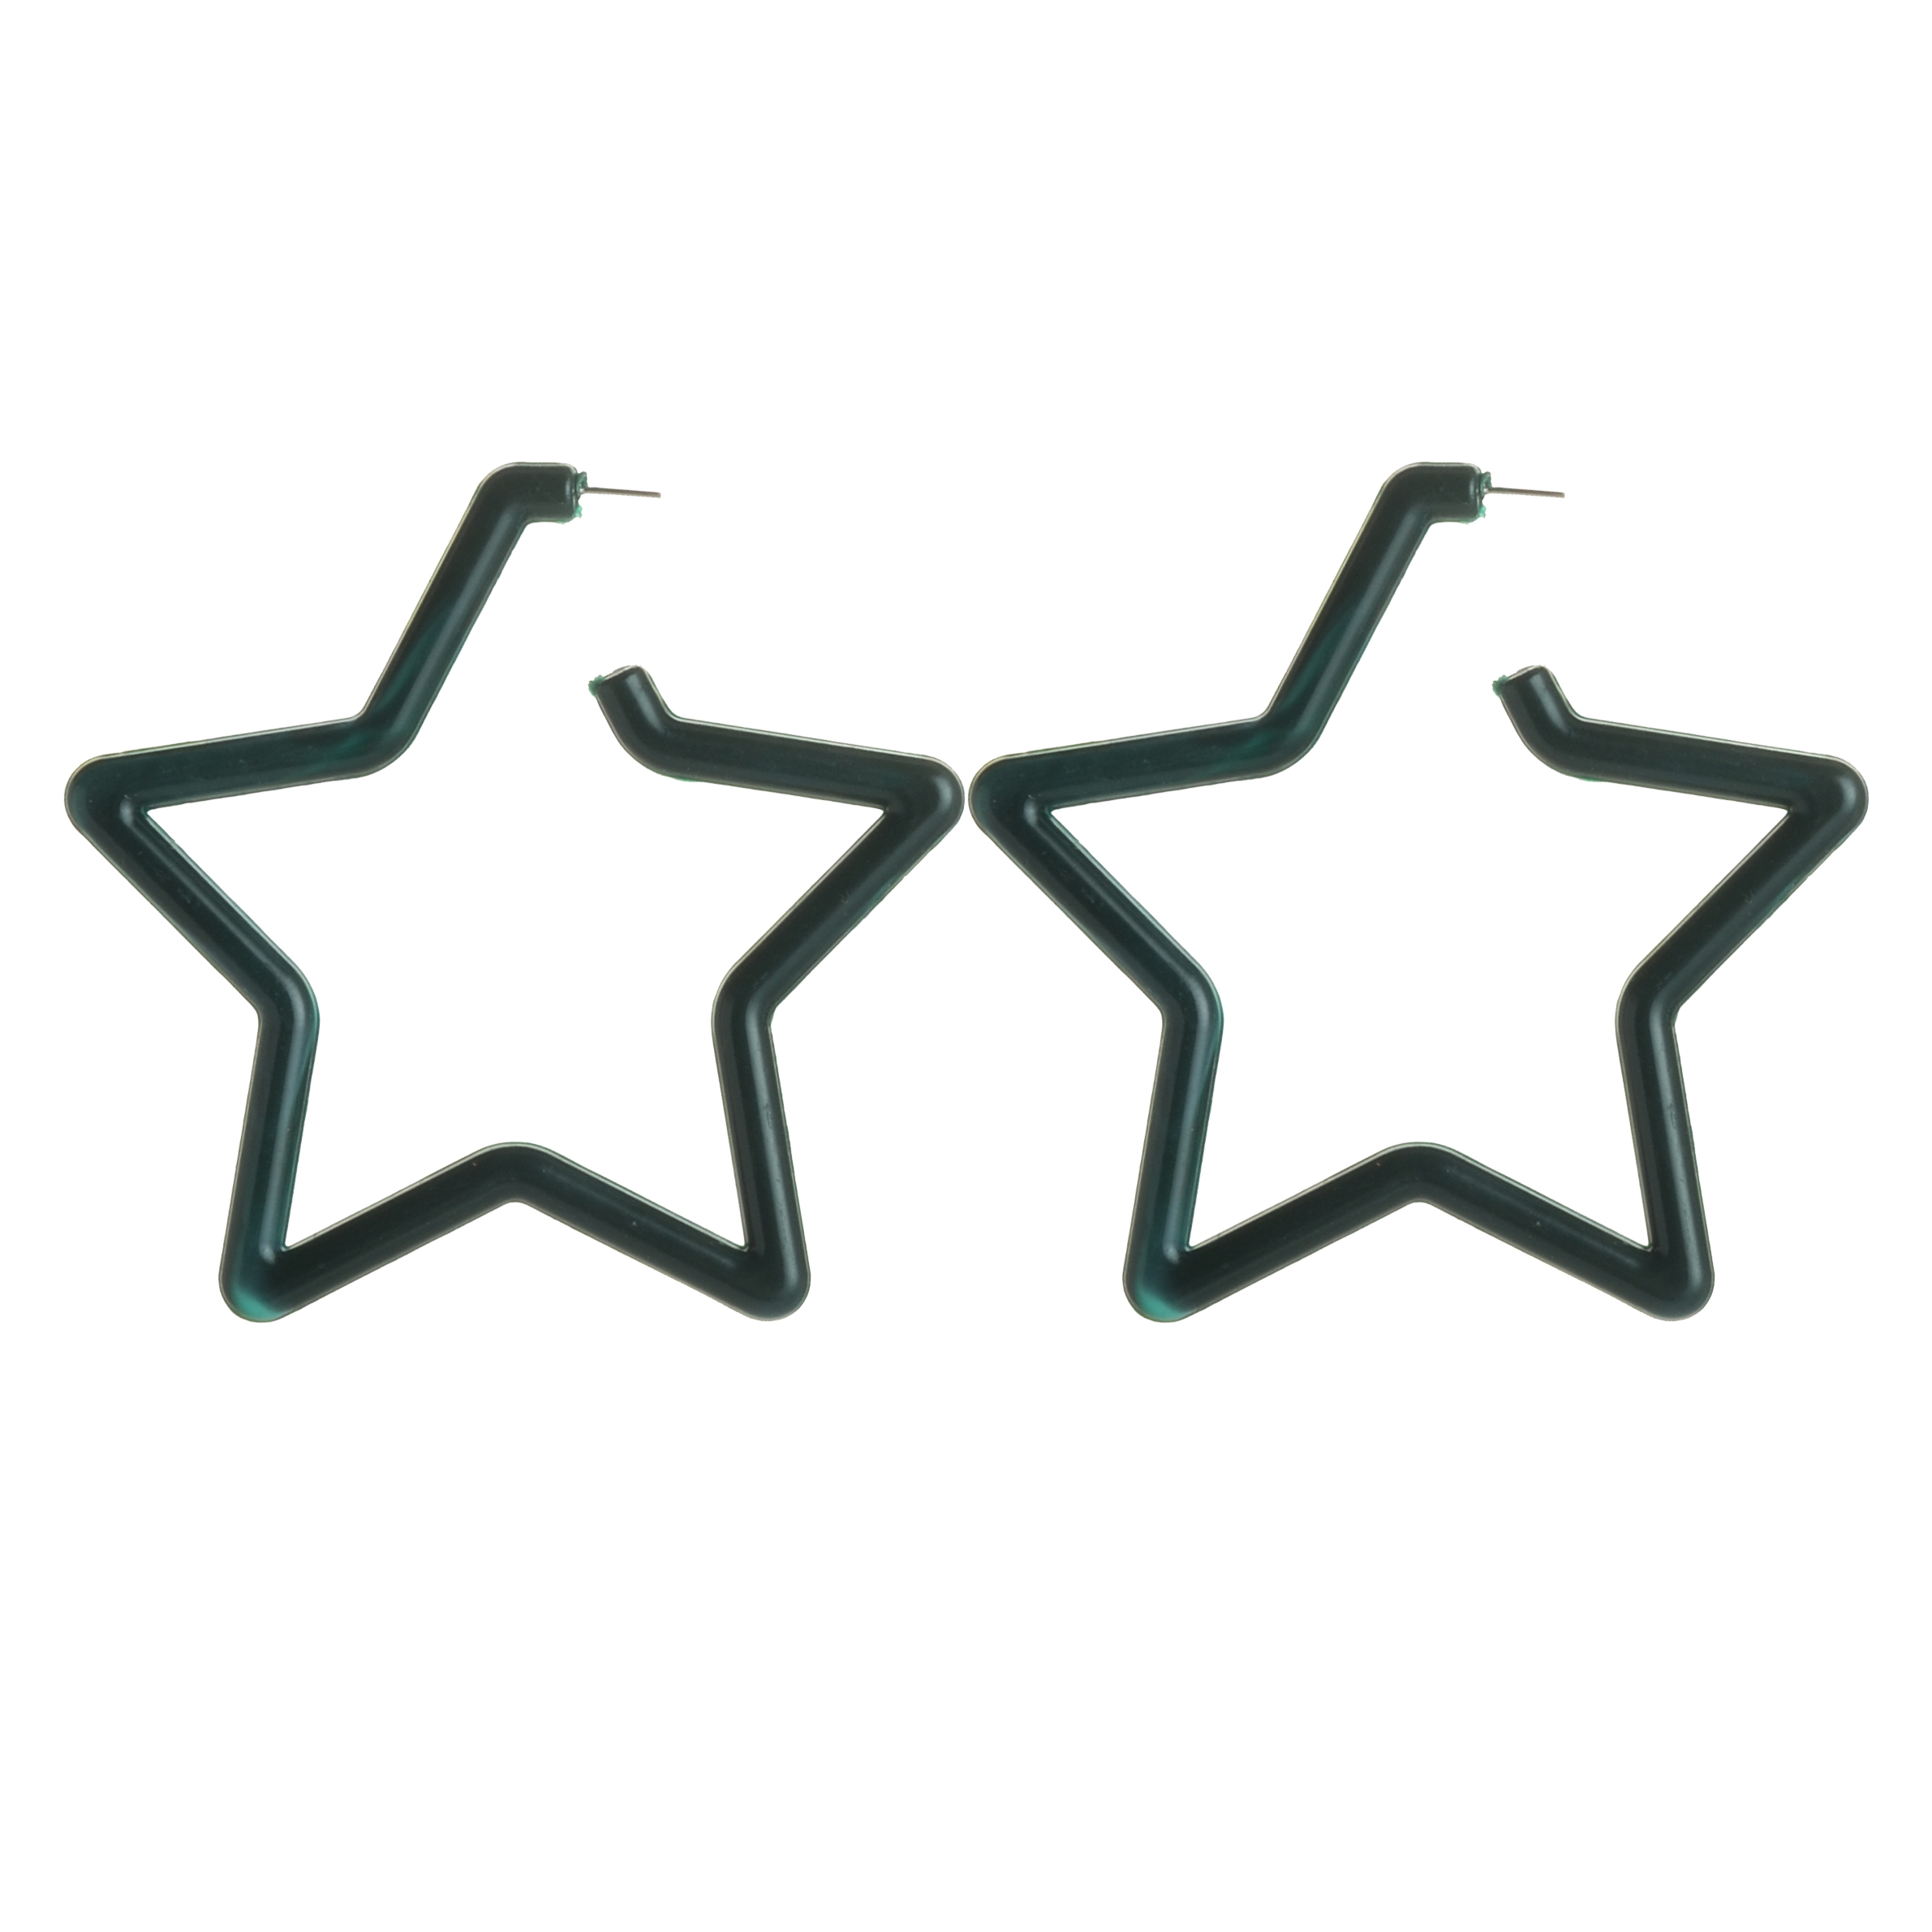 WENZHE New Arrival Wholesale Green Acrylic Hollow Star Earrings For Women Featured Image